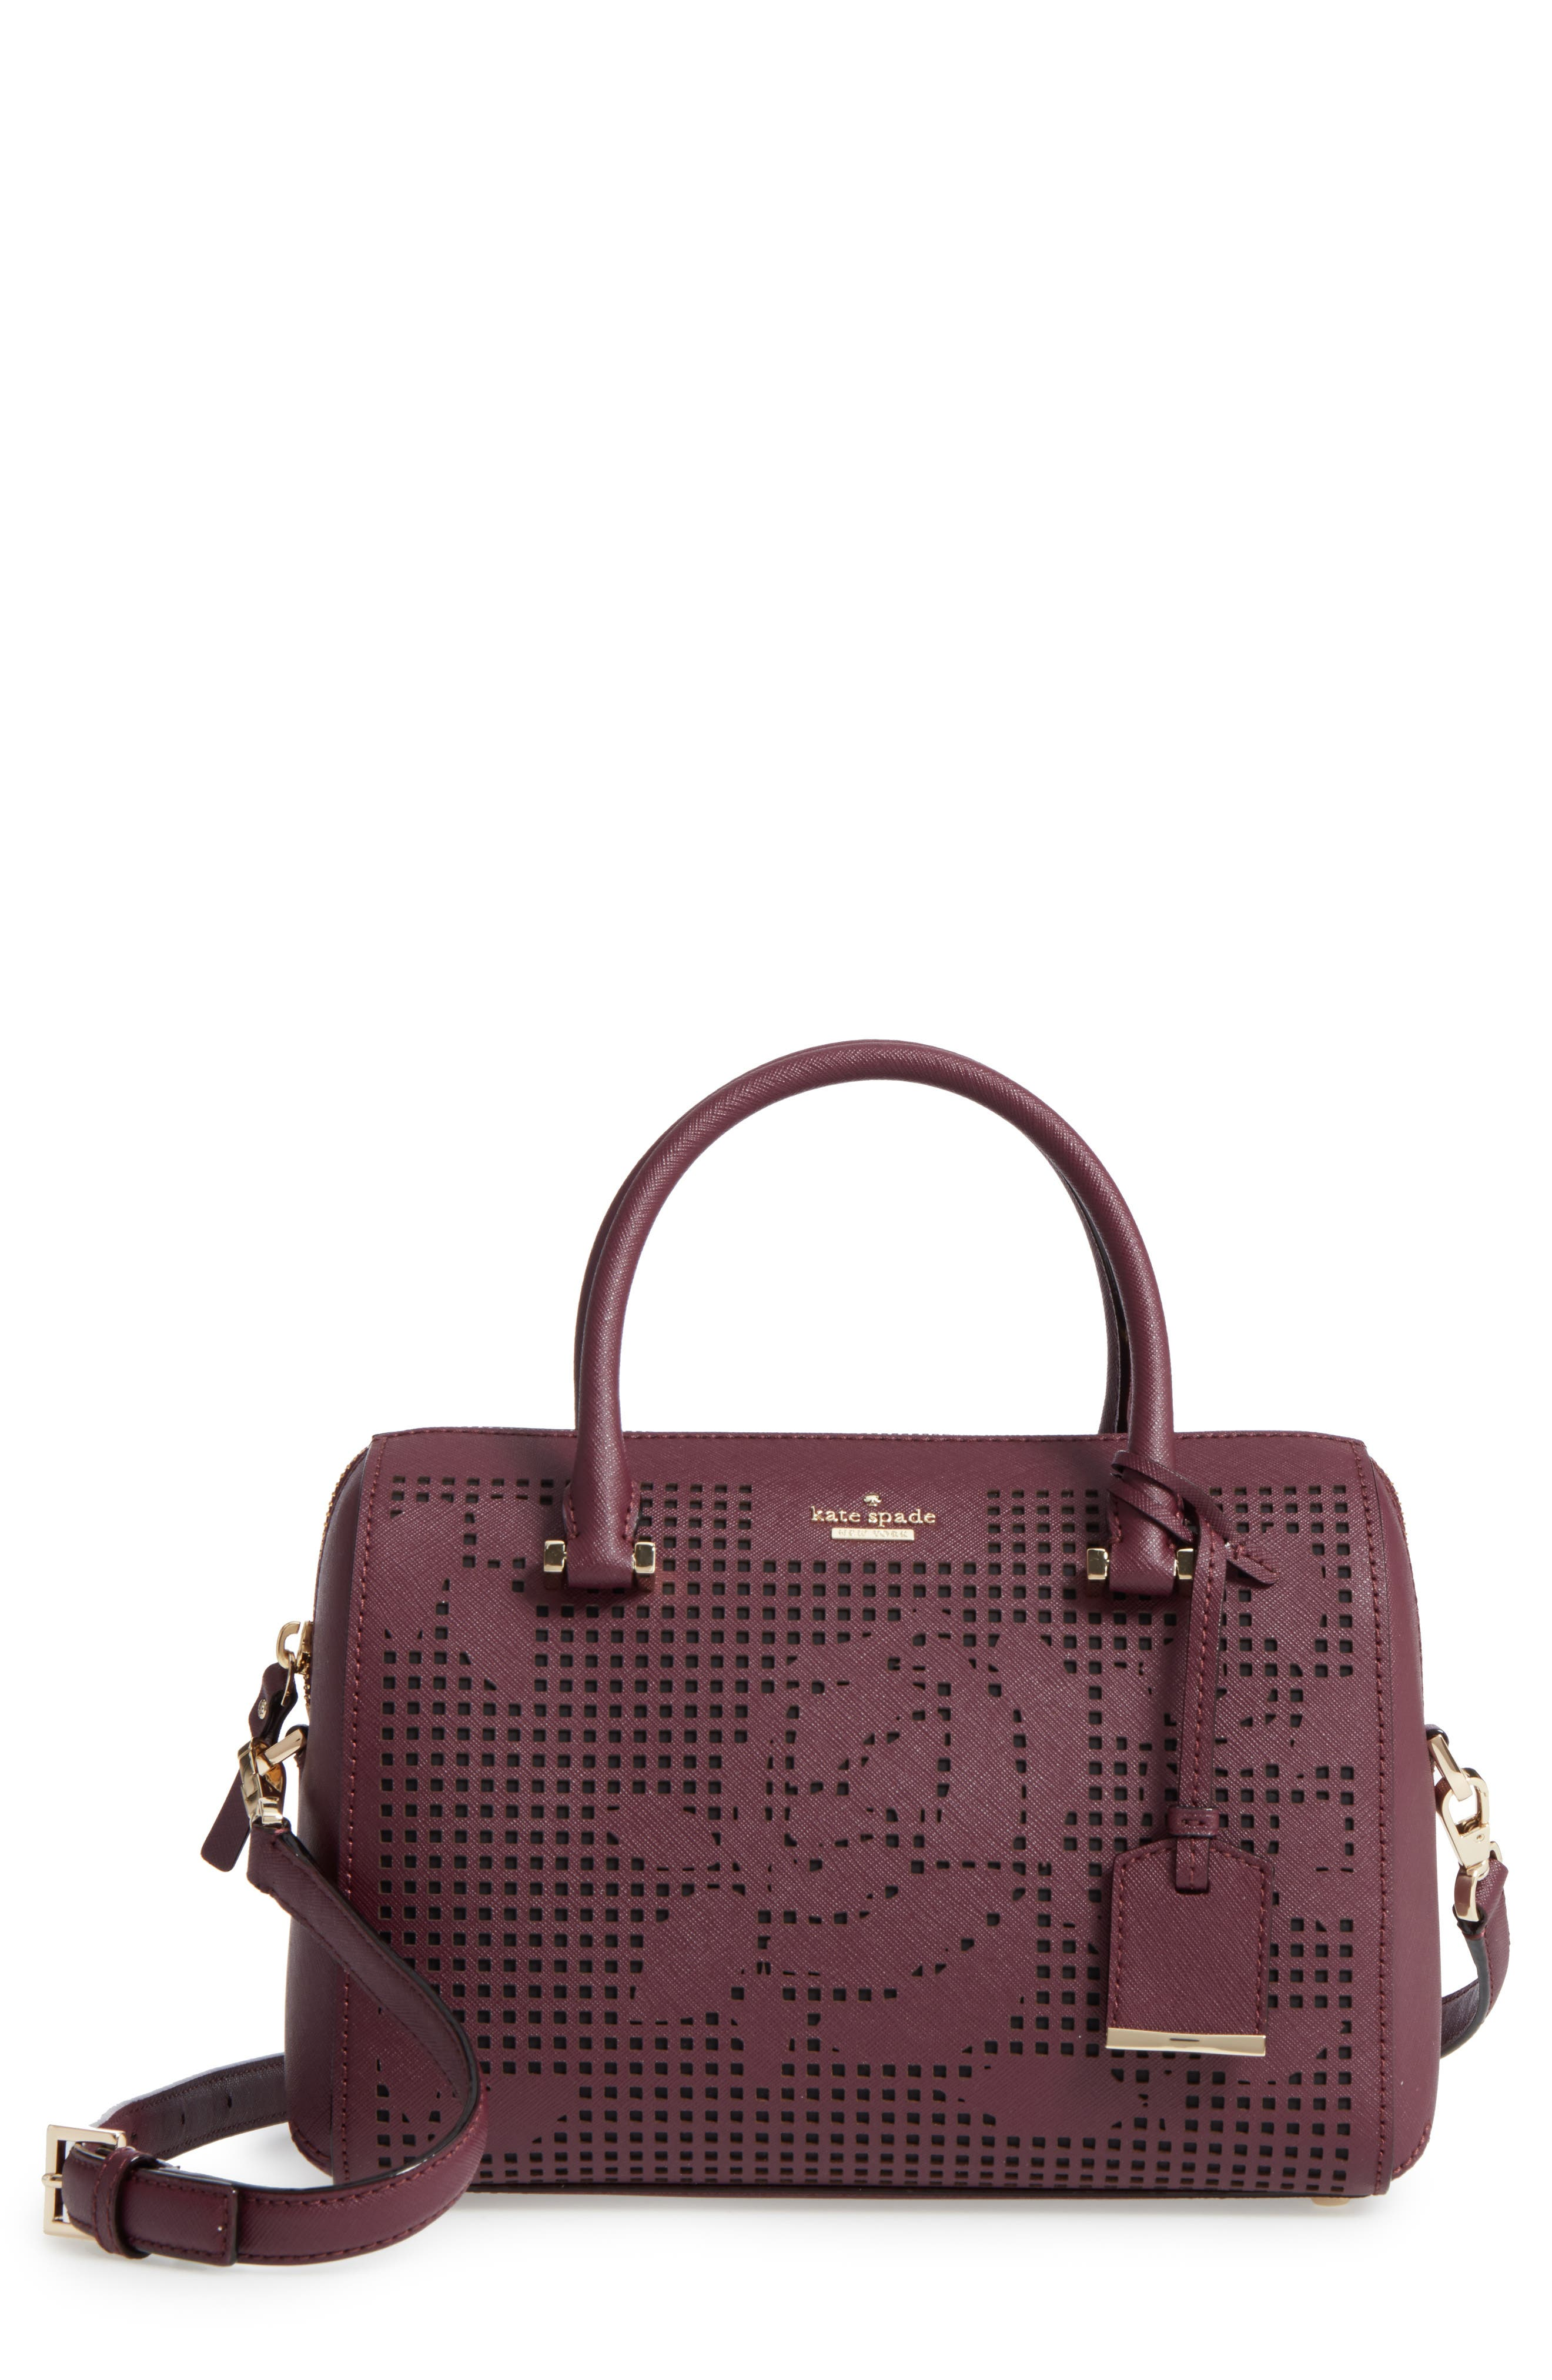 Main Image - kate spade new york cameron street - large lane leather satchel